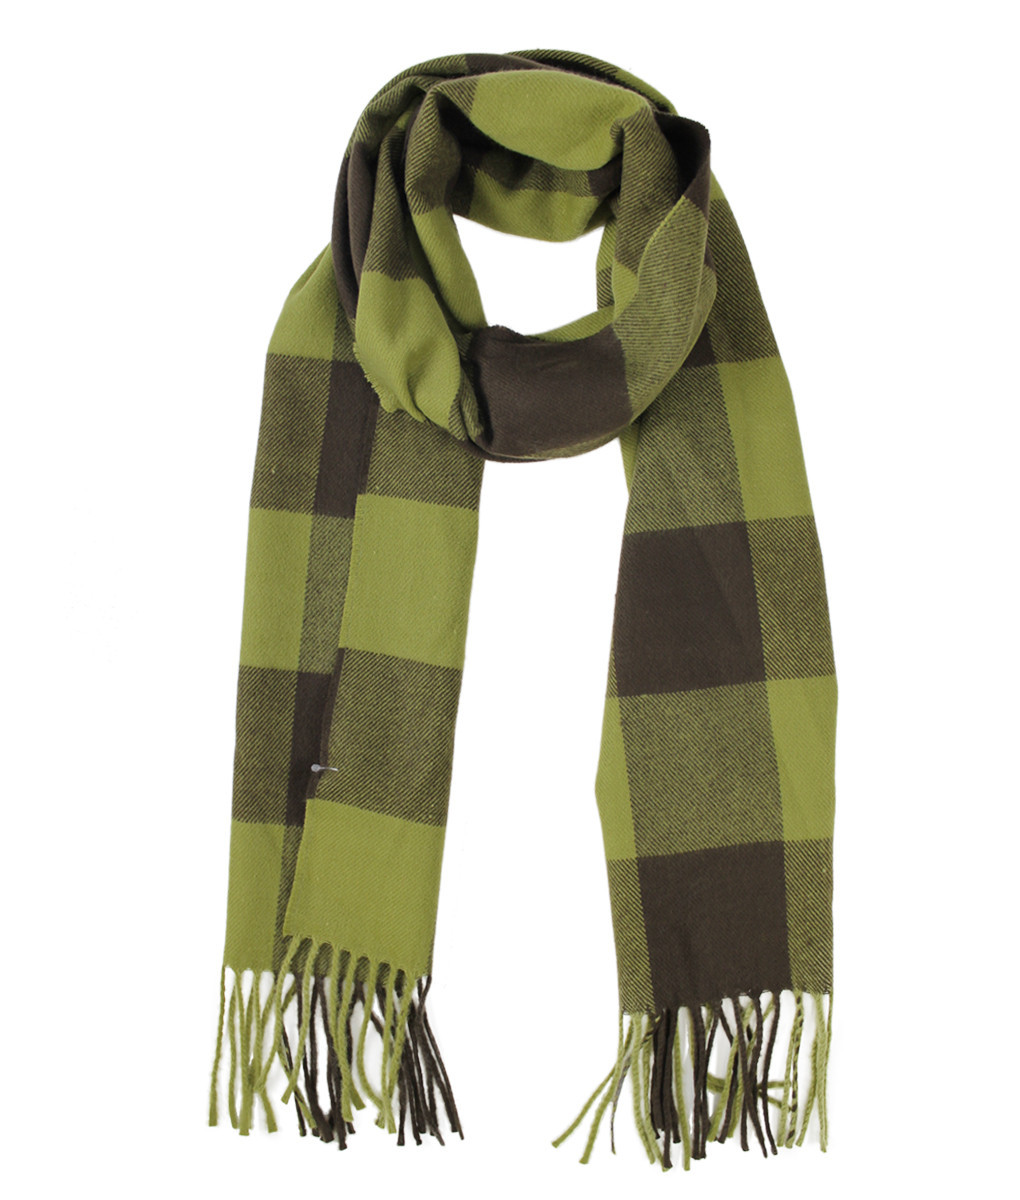 Cashmere Touch Super Acrylic Plaid Woven Scarf